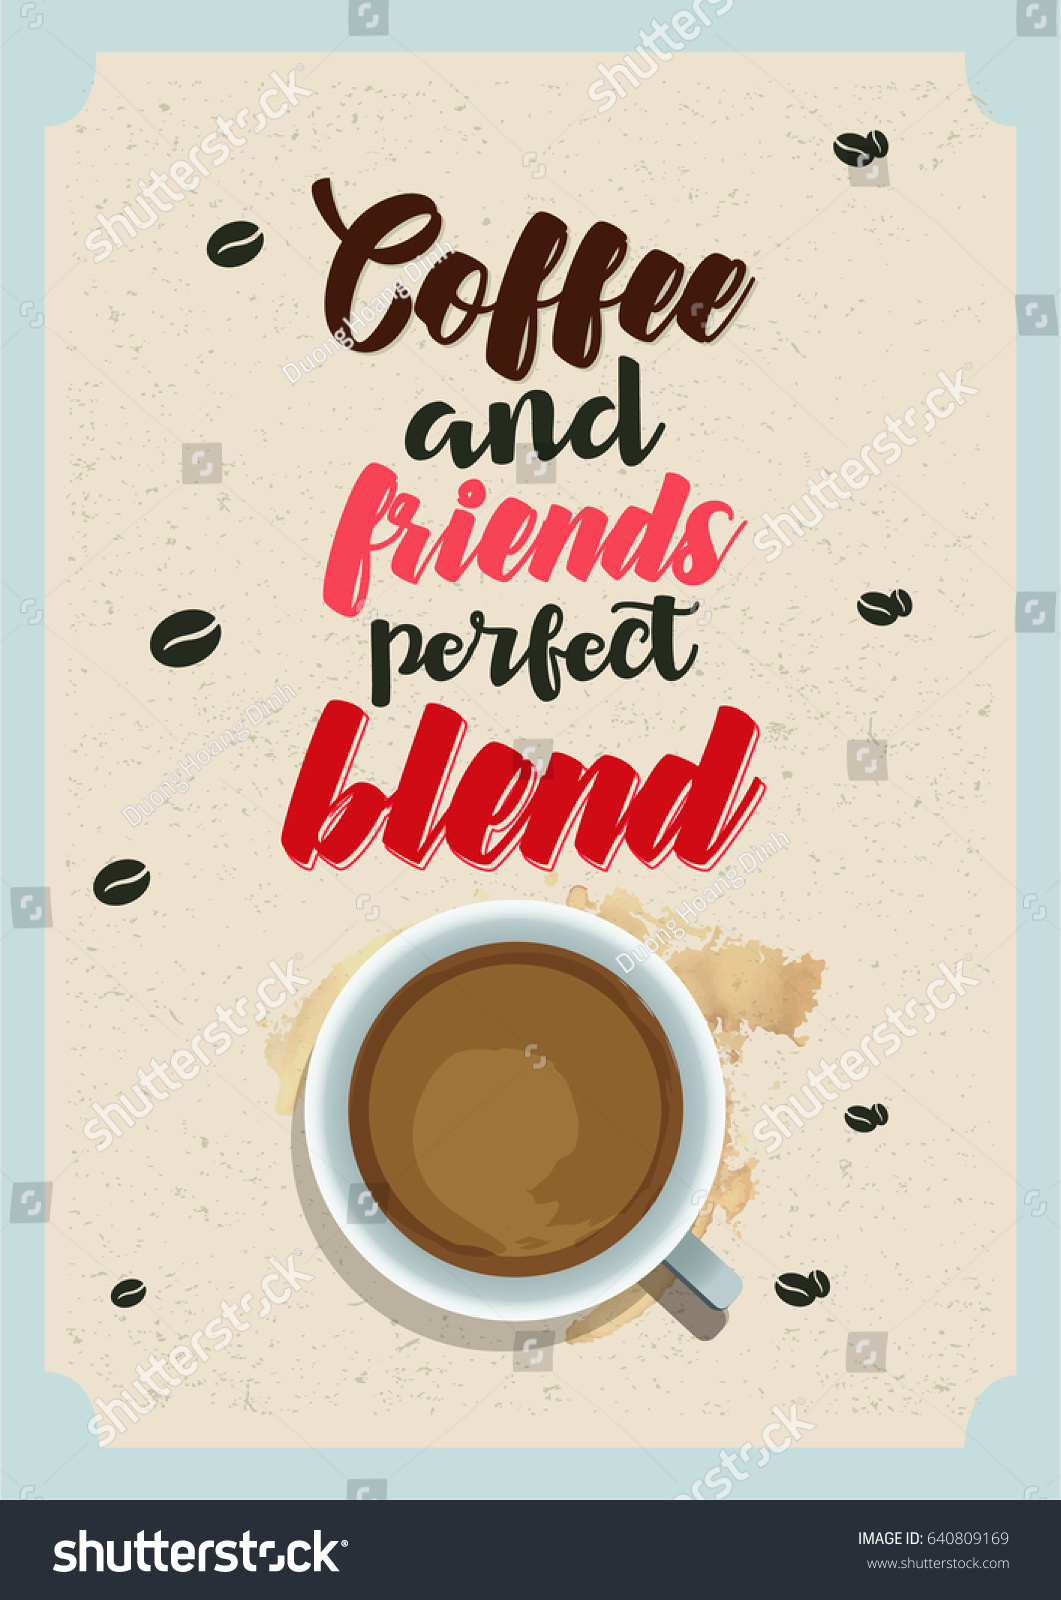 Quotes About Coffee And Friendship Coffee Related Illustration Quotes Graphic Design Stock Vector